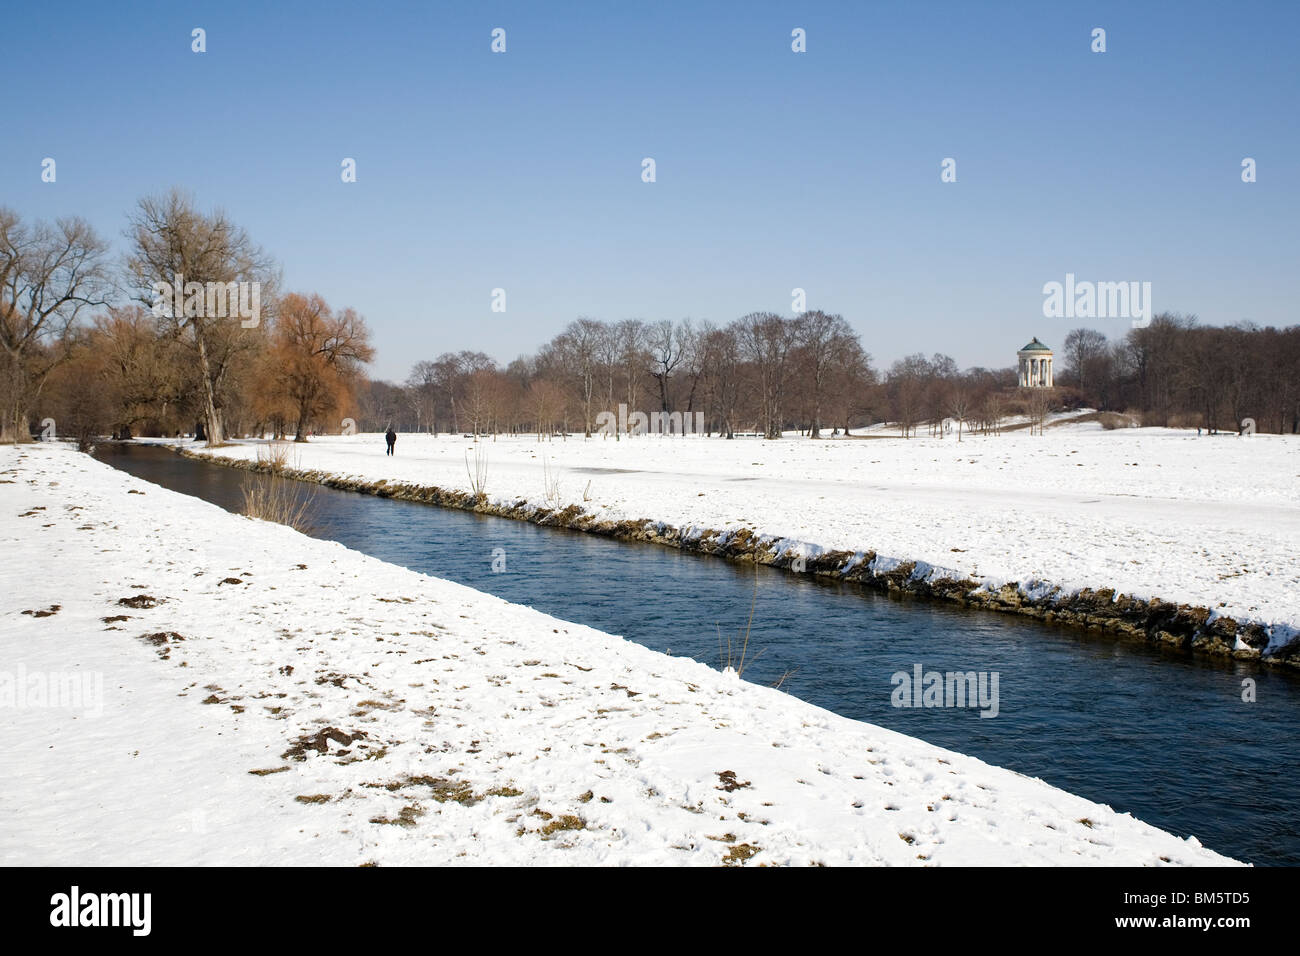 The river Eisbach runs through the Englischer Garten in Central Munich, Germany. - Stock Image